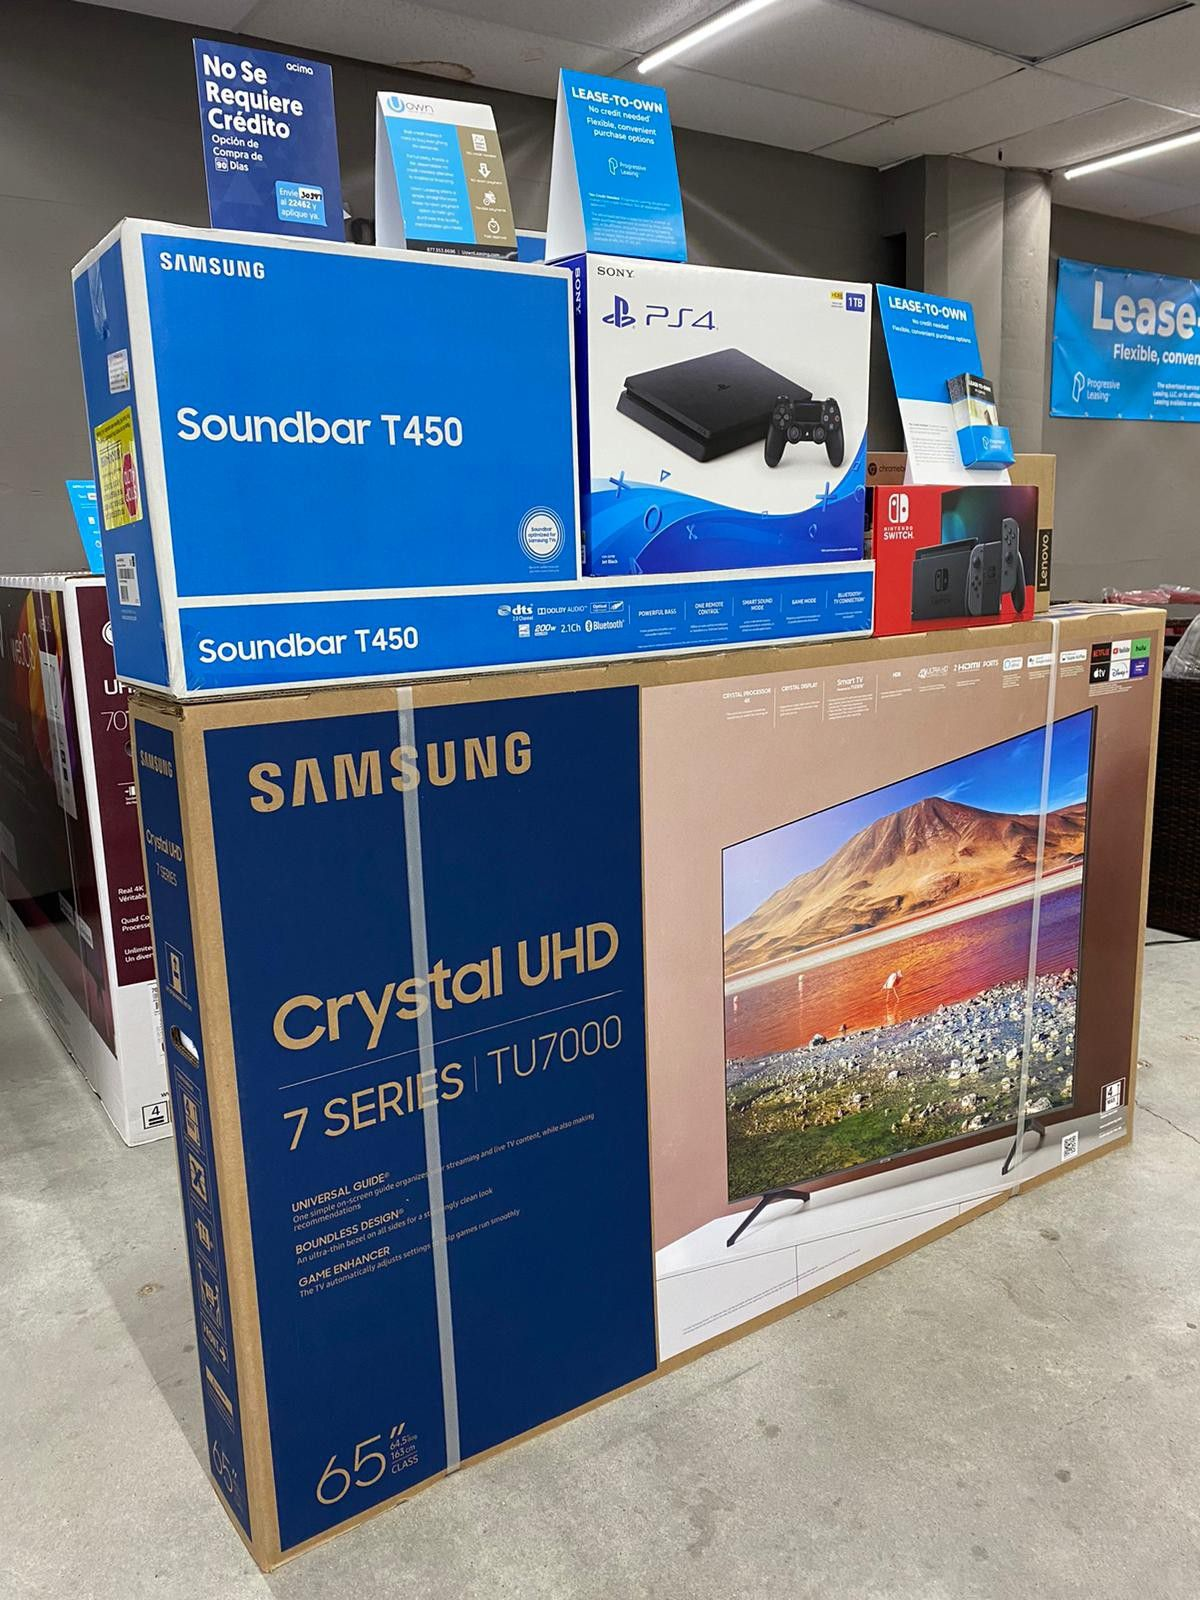 """🔥🔥SAMSUNG 65"""" Smart 4K TV 🔥🔥with ps4 or Soundbar or gaming console or tablet or laptop 👏👏 No credit check"""